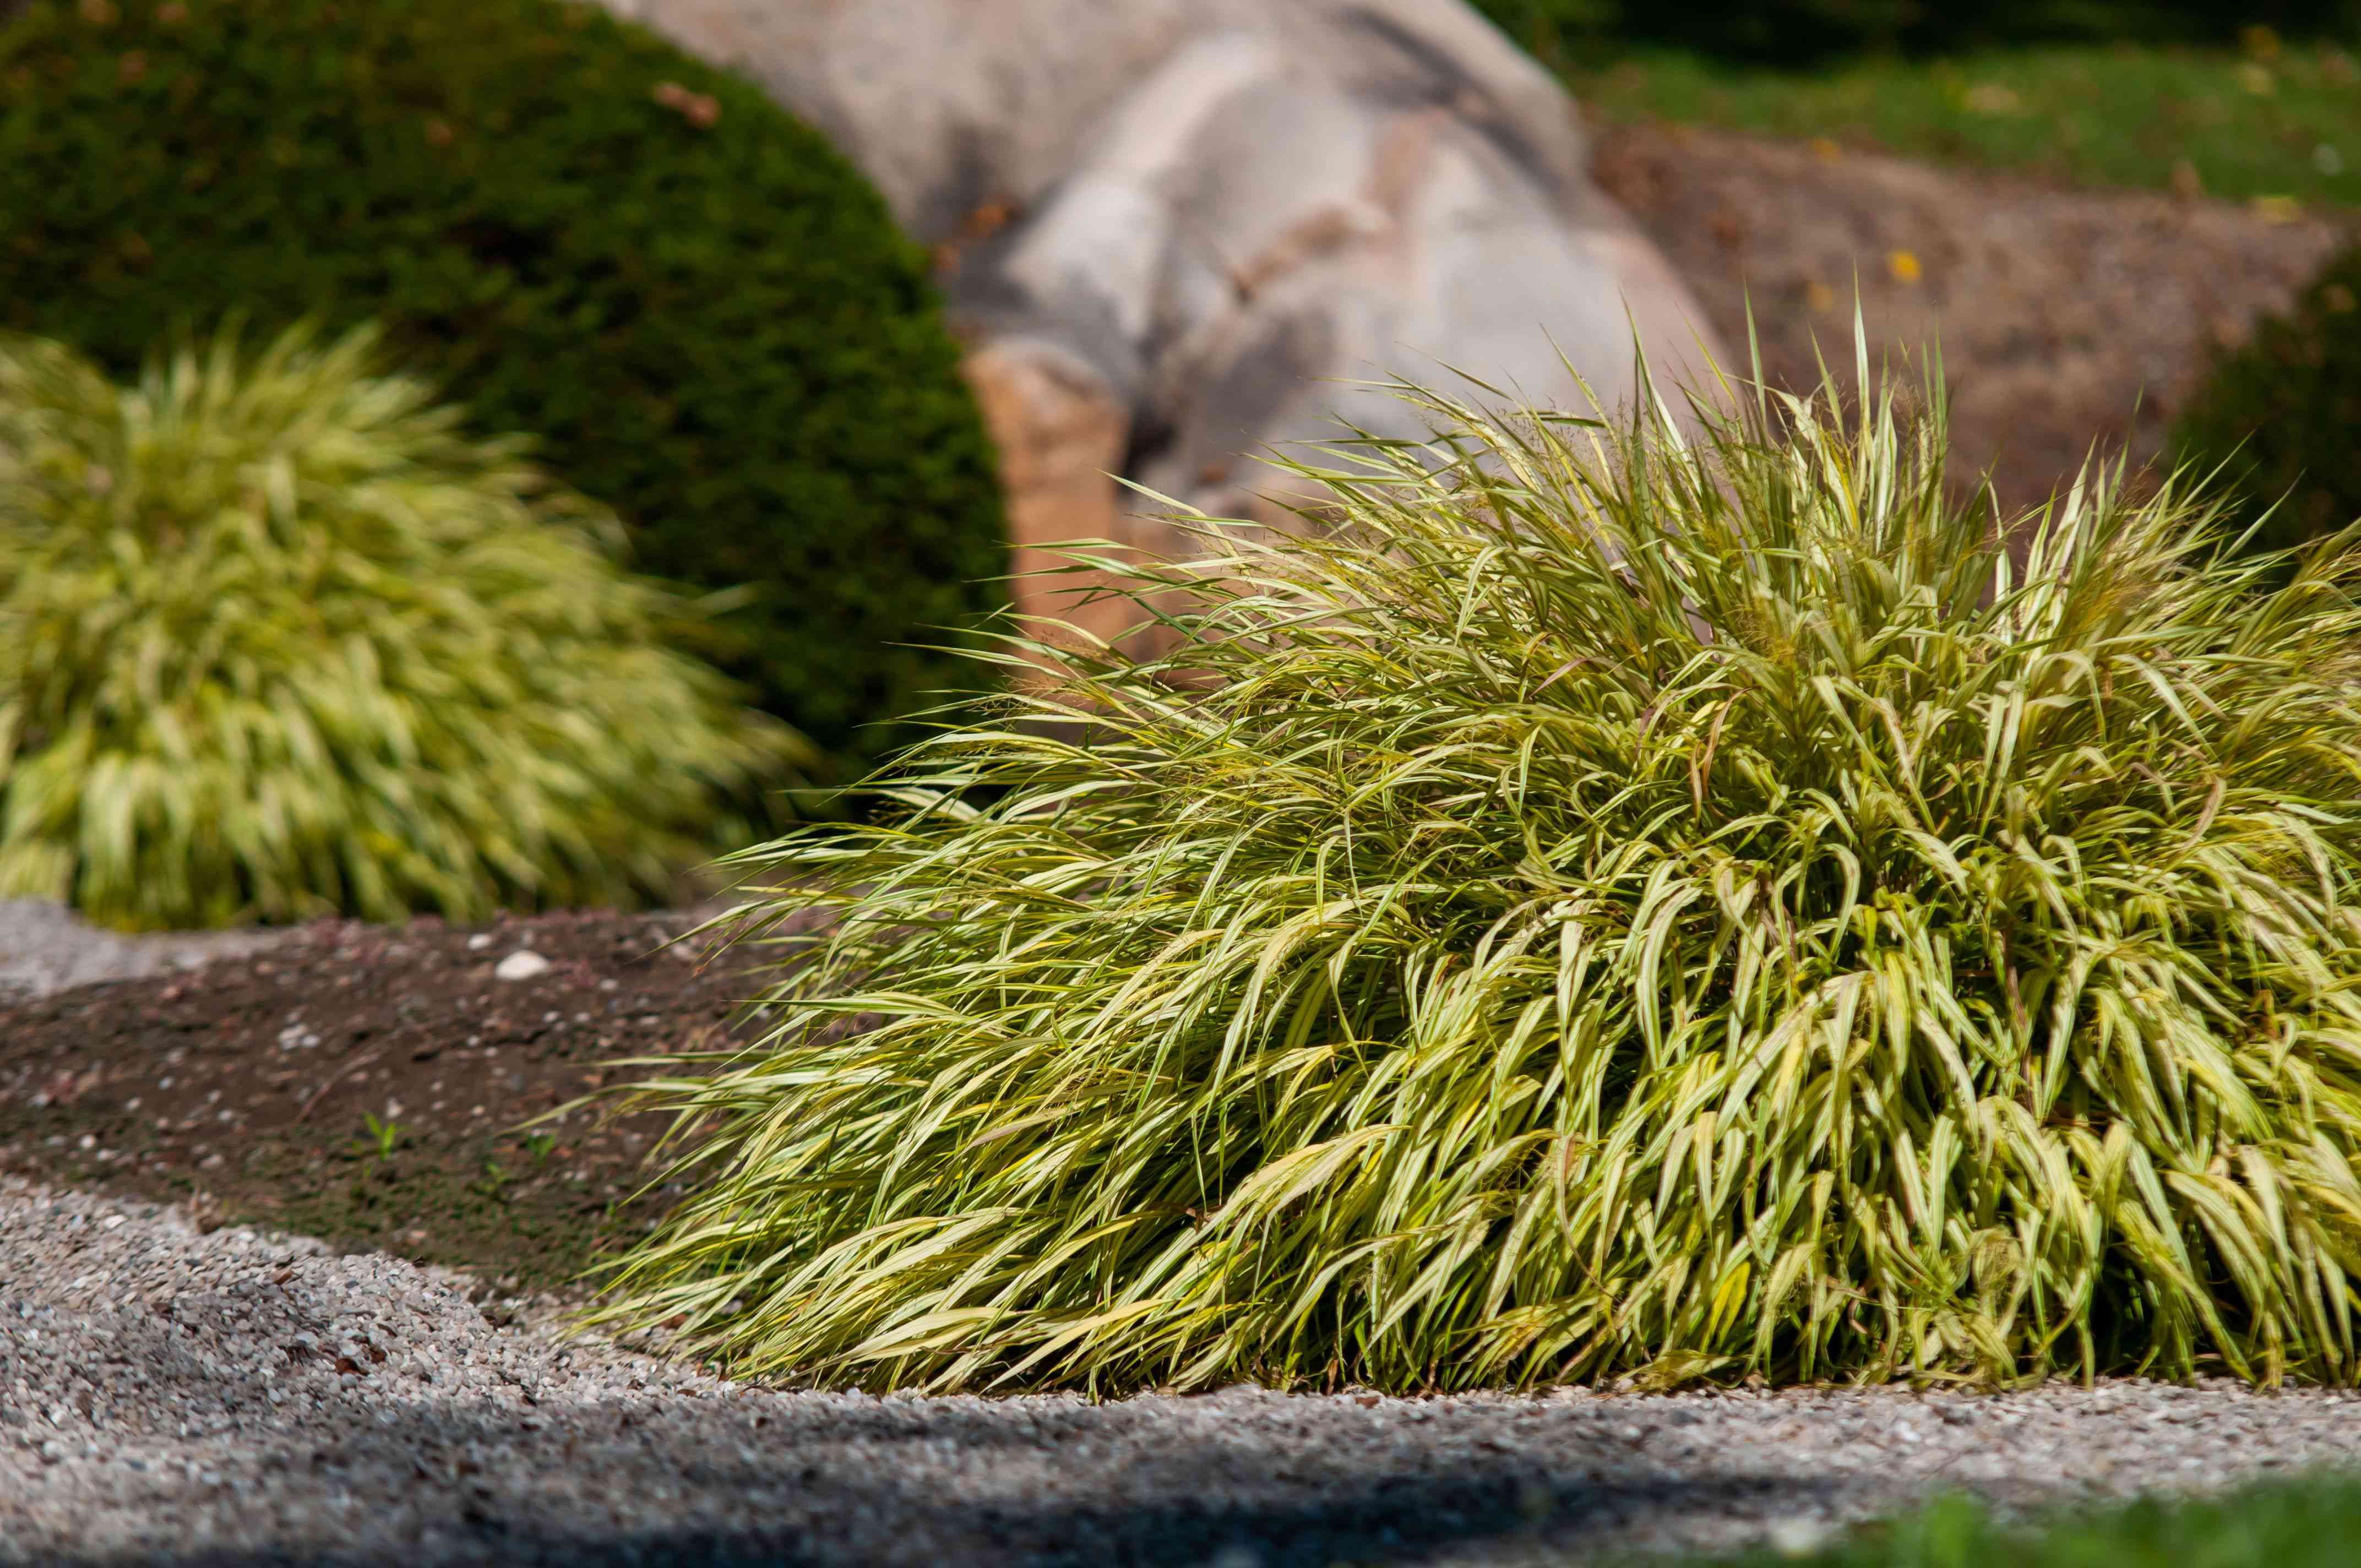 Japanese forest ornamental grass with variegated yellow and green blades clumped in sunlight